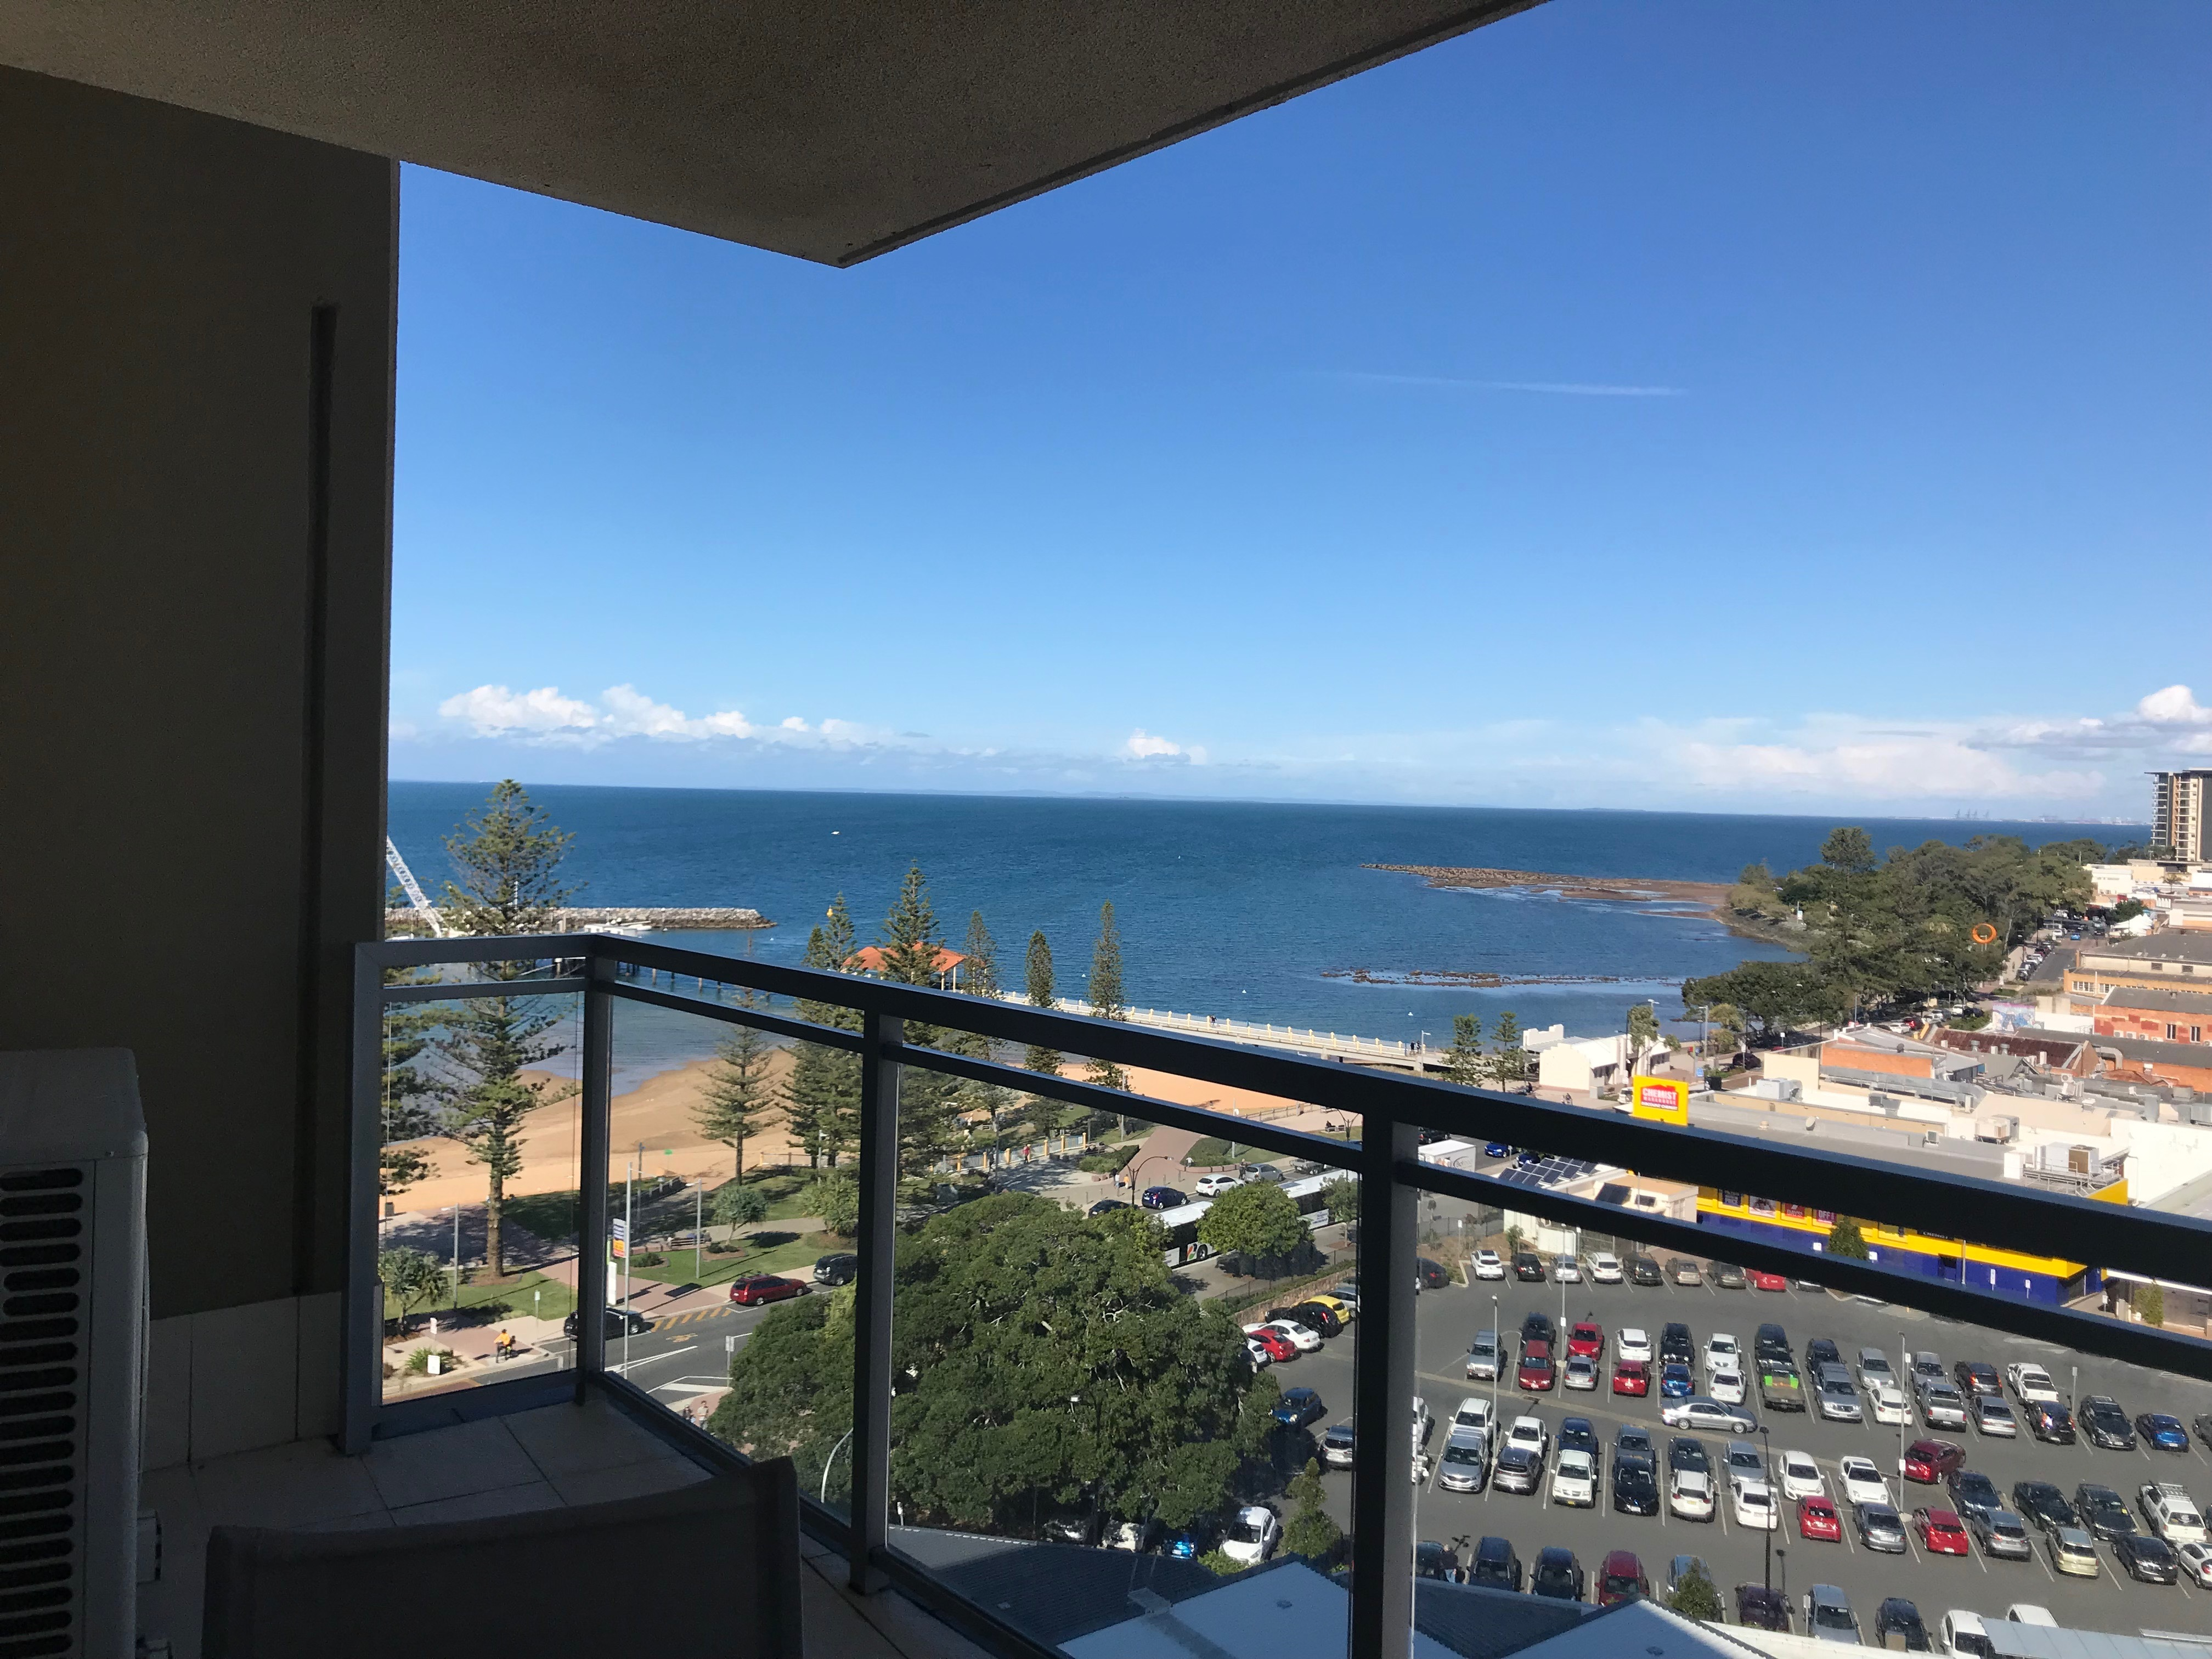 606/185 Redcliffe Pde Redcliffe, 4020 1 Bedroom Unit for